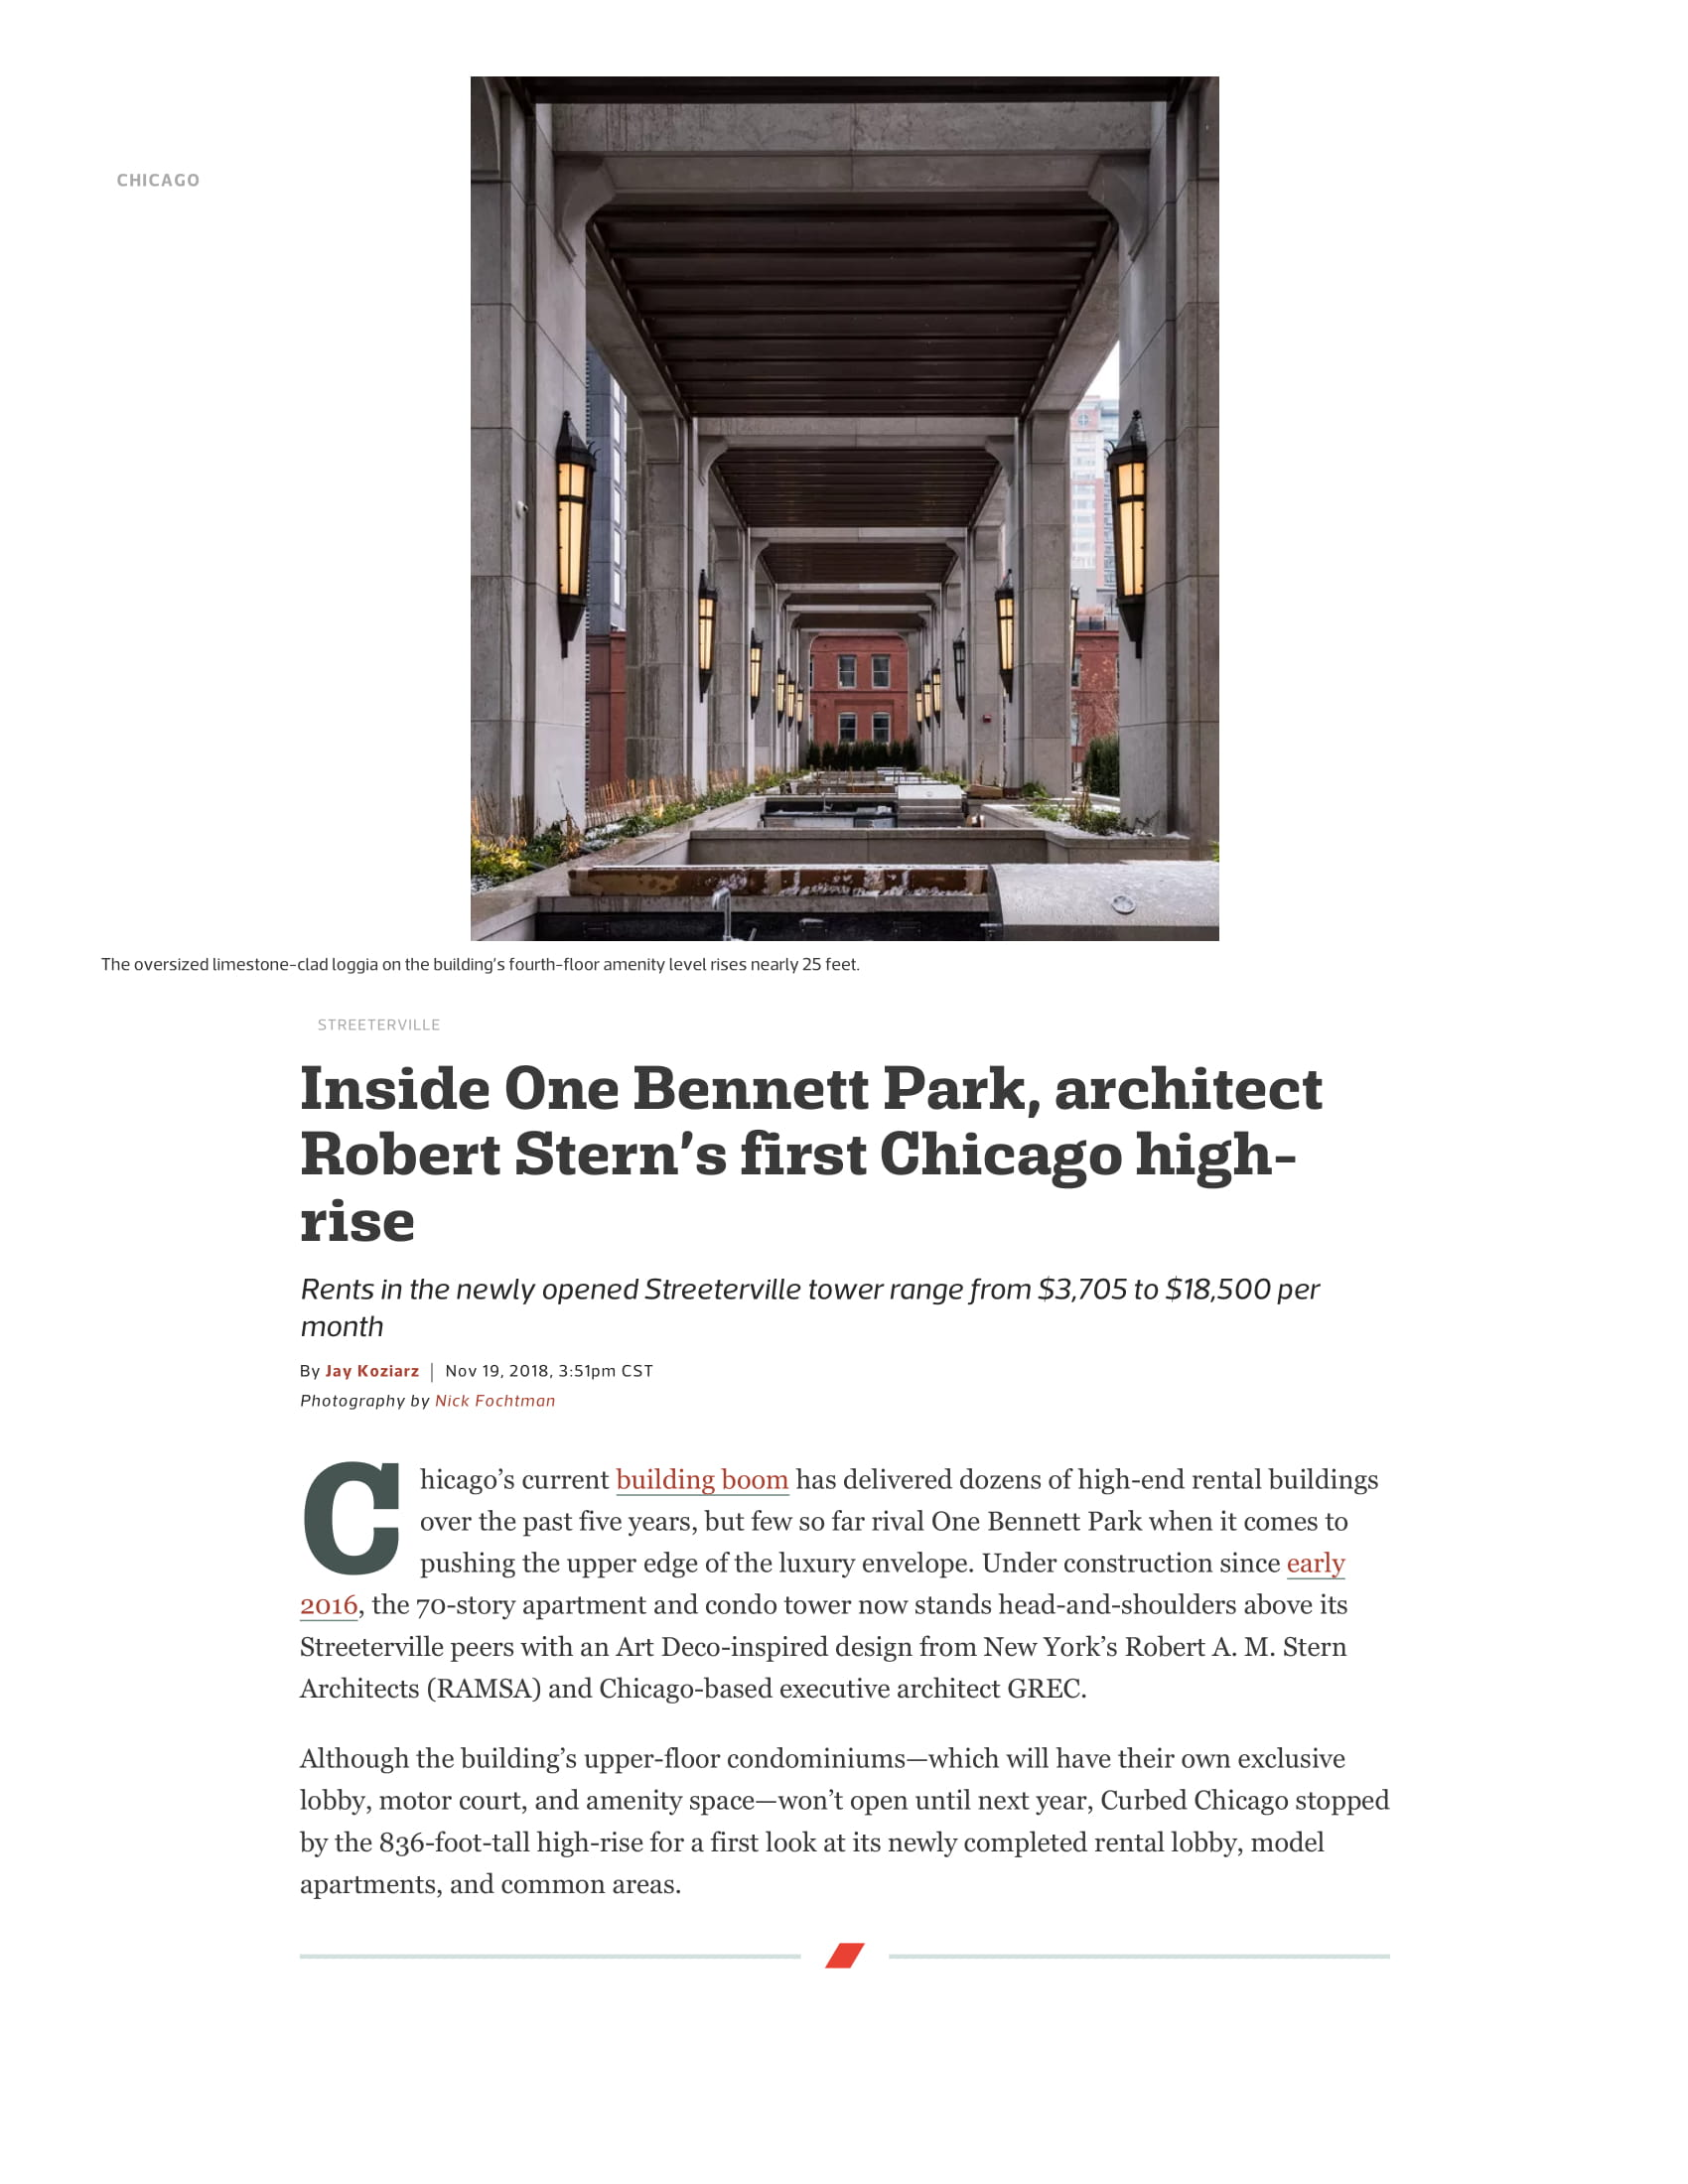 window treatments Interior Design & Architecture: Robert A.M. Stern Architects for One Bennett Park, Chicago  curbed.com, november 2018